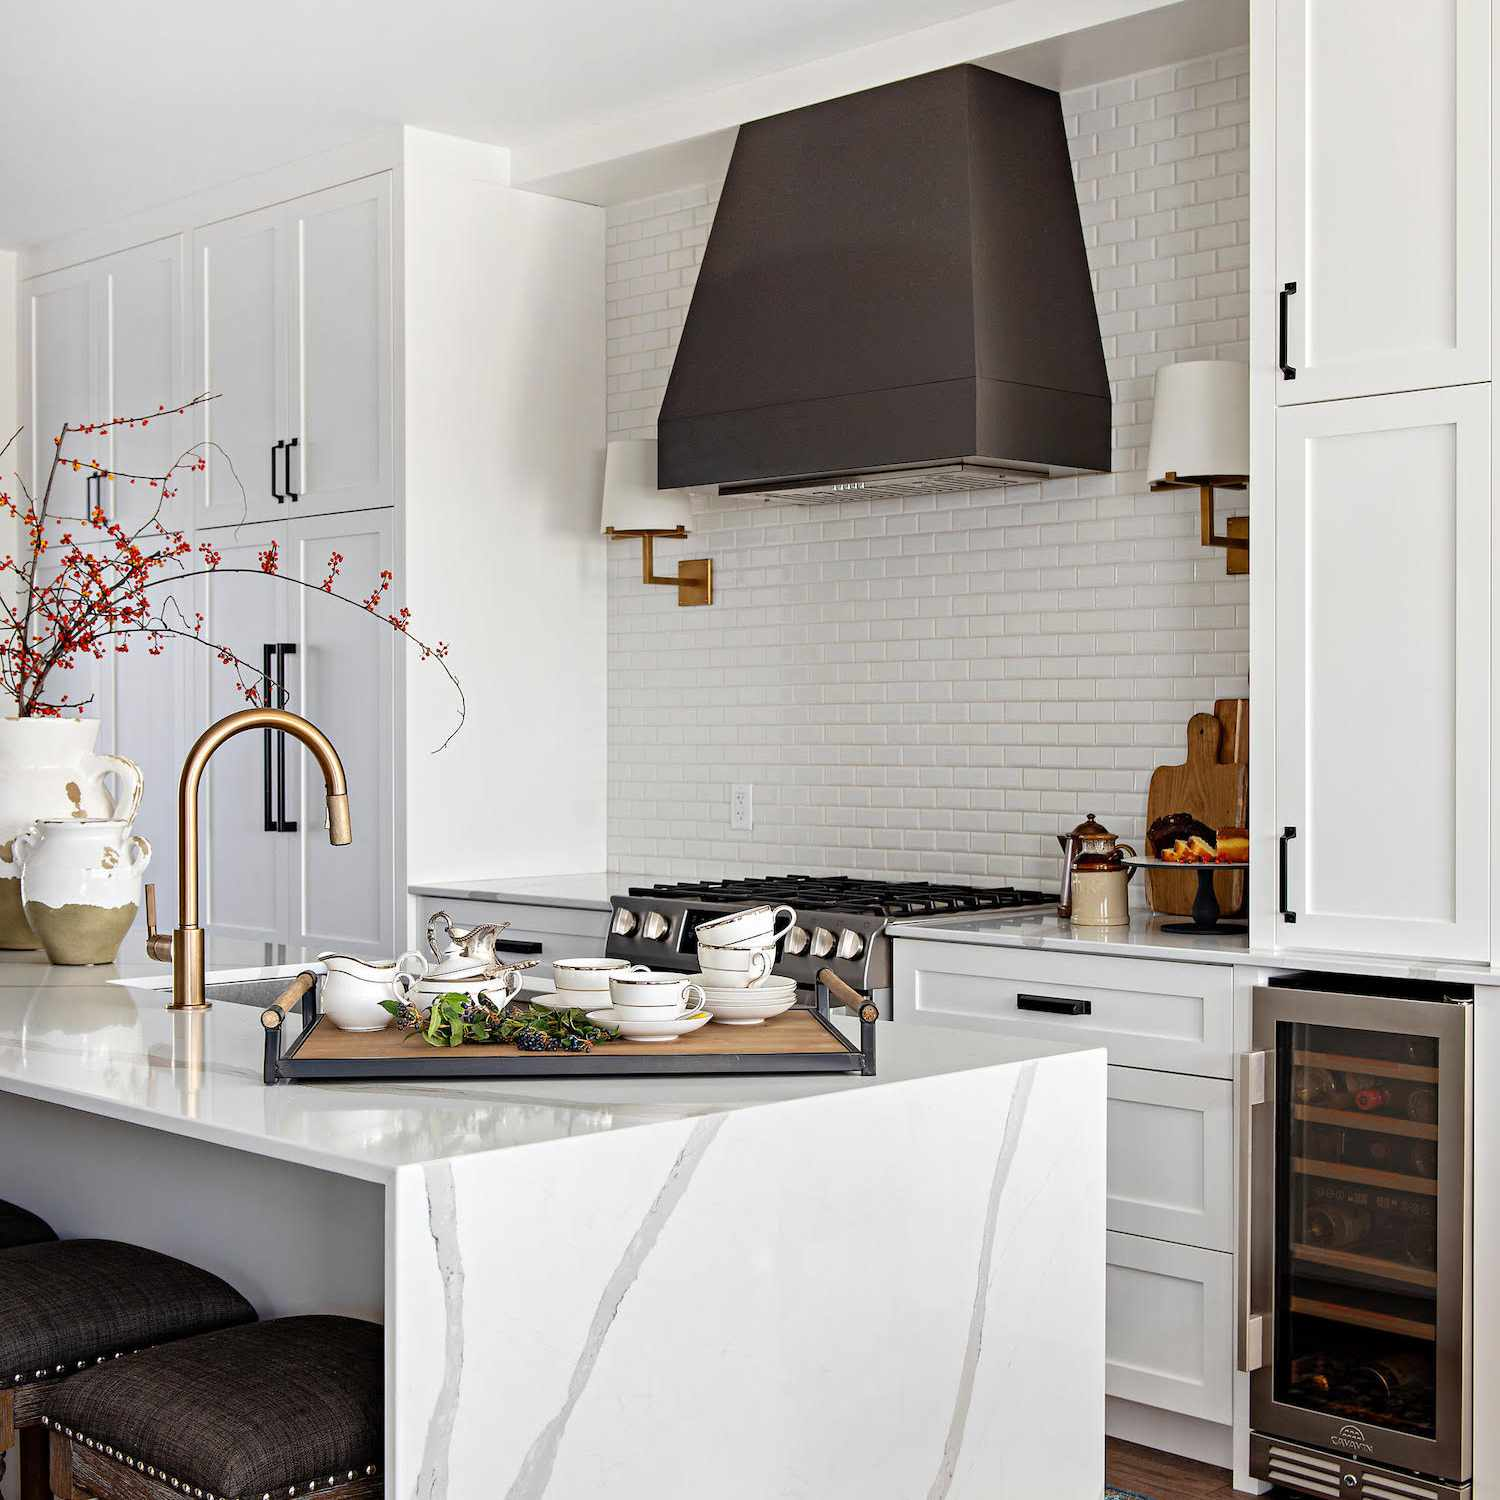 White kitchen with stove hood